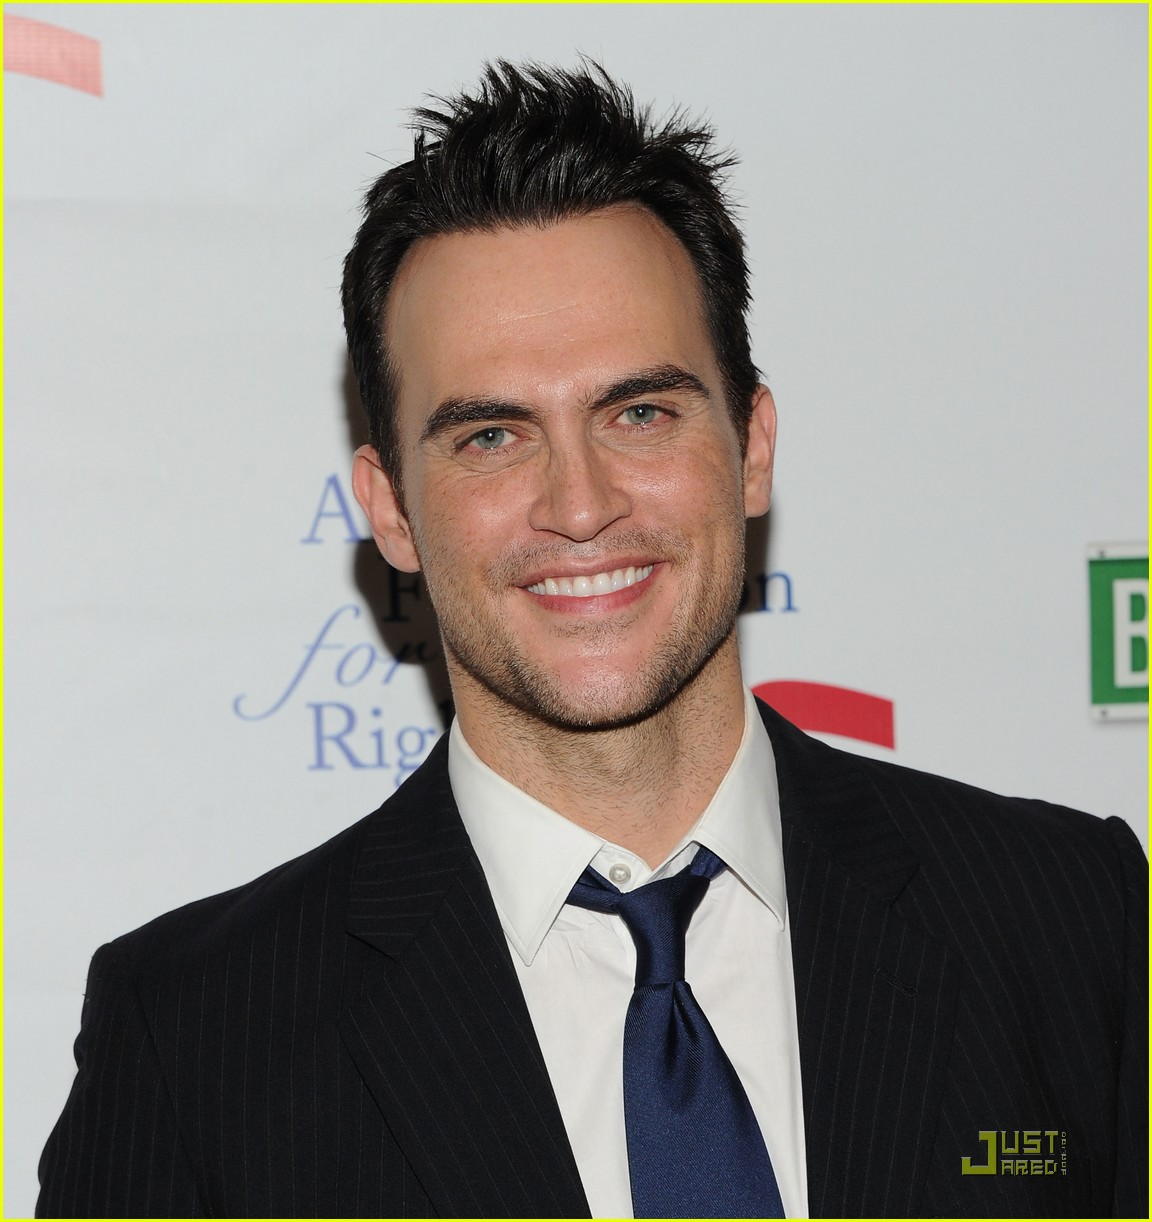 cheyenne jackson boyfriendcheyenne jackson american horror story, cheyenne jackson i don't wanna know, cheyenne jackson married jason landau, cheyenne jackson glee, cheyenne jackson baby, cheyenne jackson height, cheyenne jackson instagram, cheyenne jackson net worth, cheyenne jackson, cheyenne jackson ahs, cheyenne jackson and jason landau, cheyenne jackson boyfriend, cheyenne jackson youtube, cheyenne jackson wiki, cheyenne jackson twitter